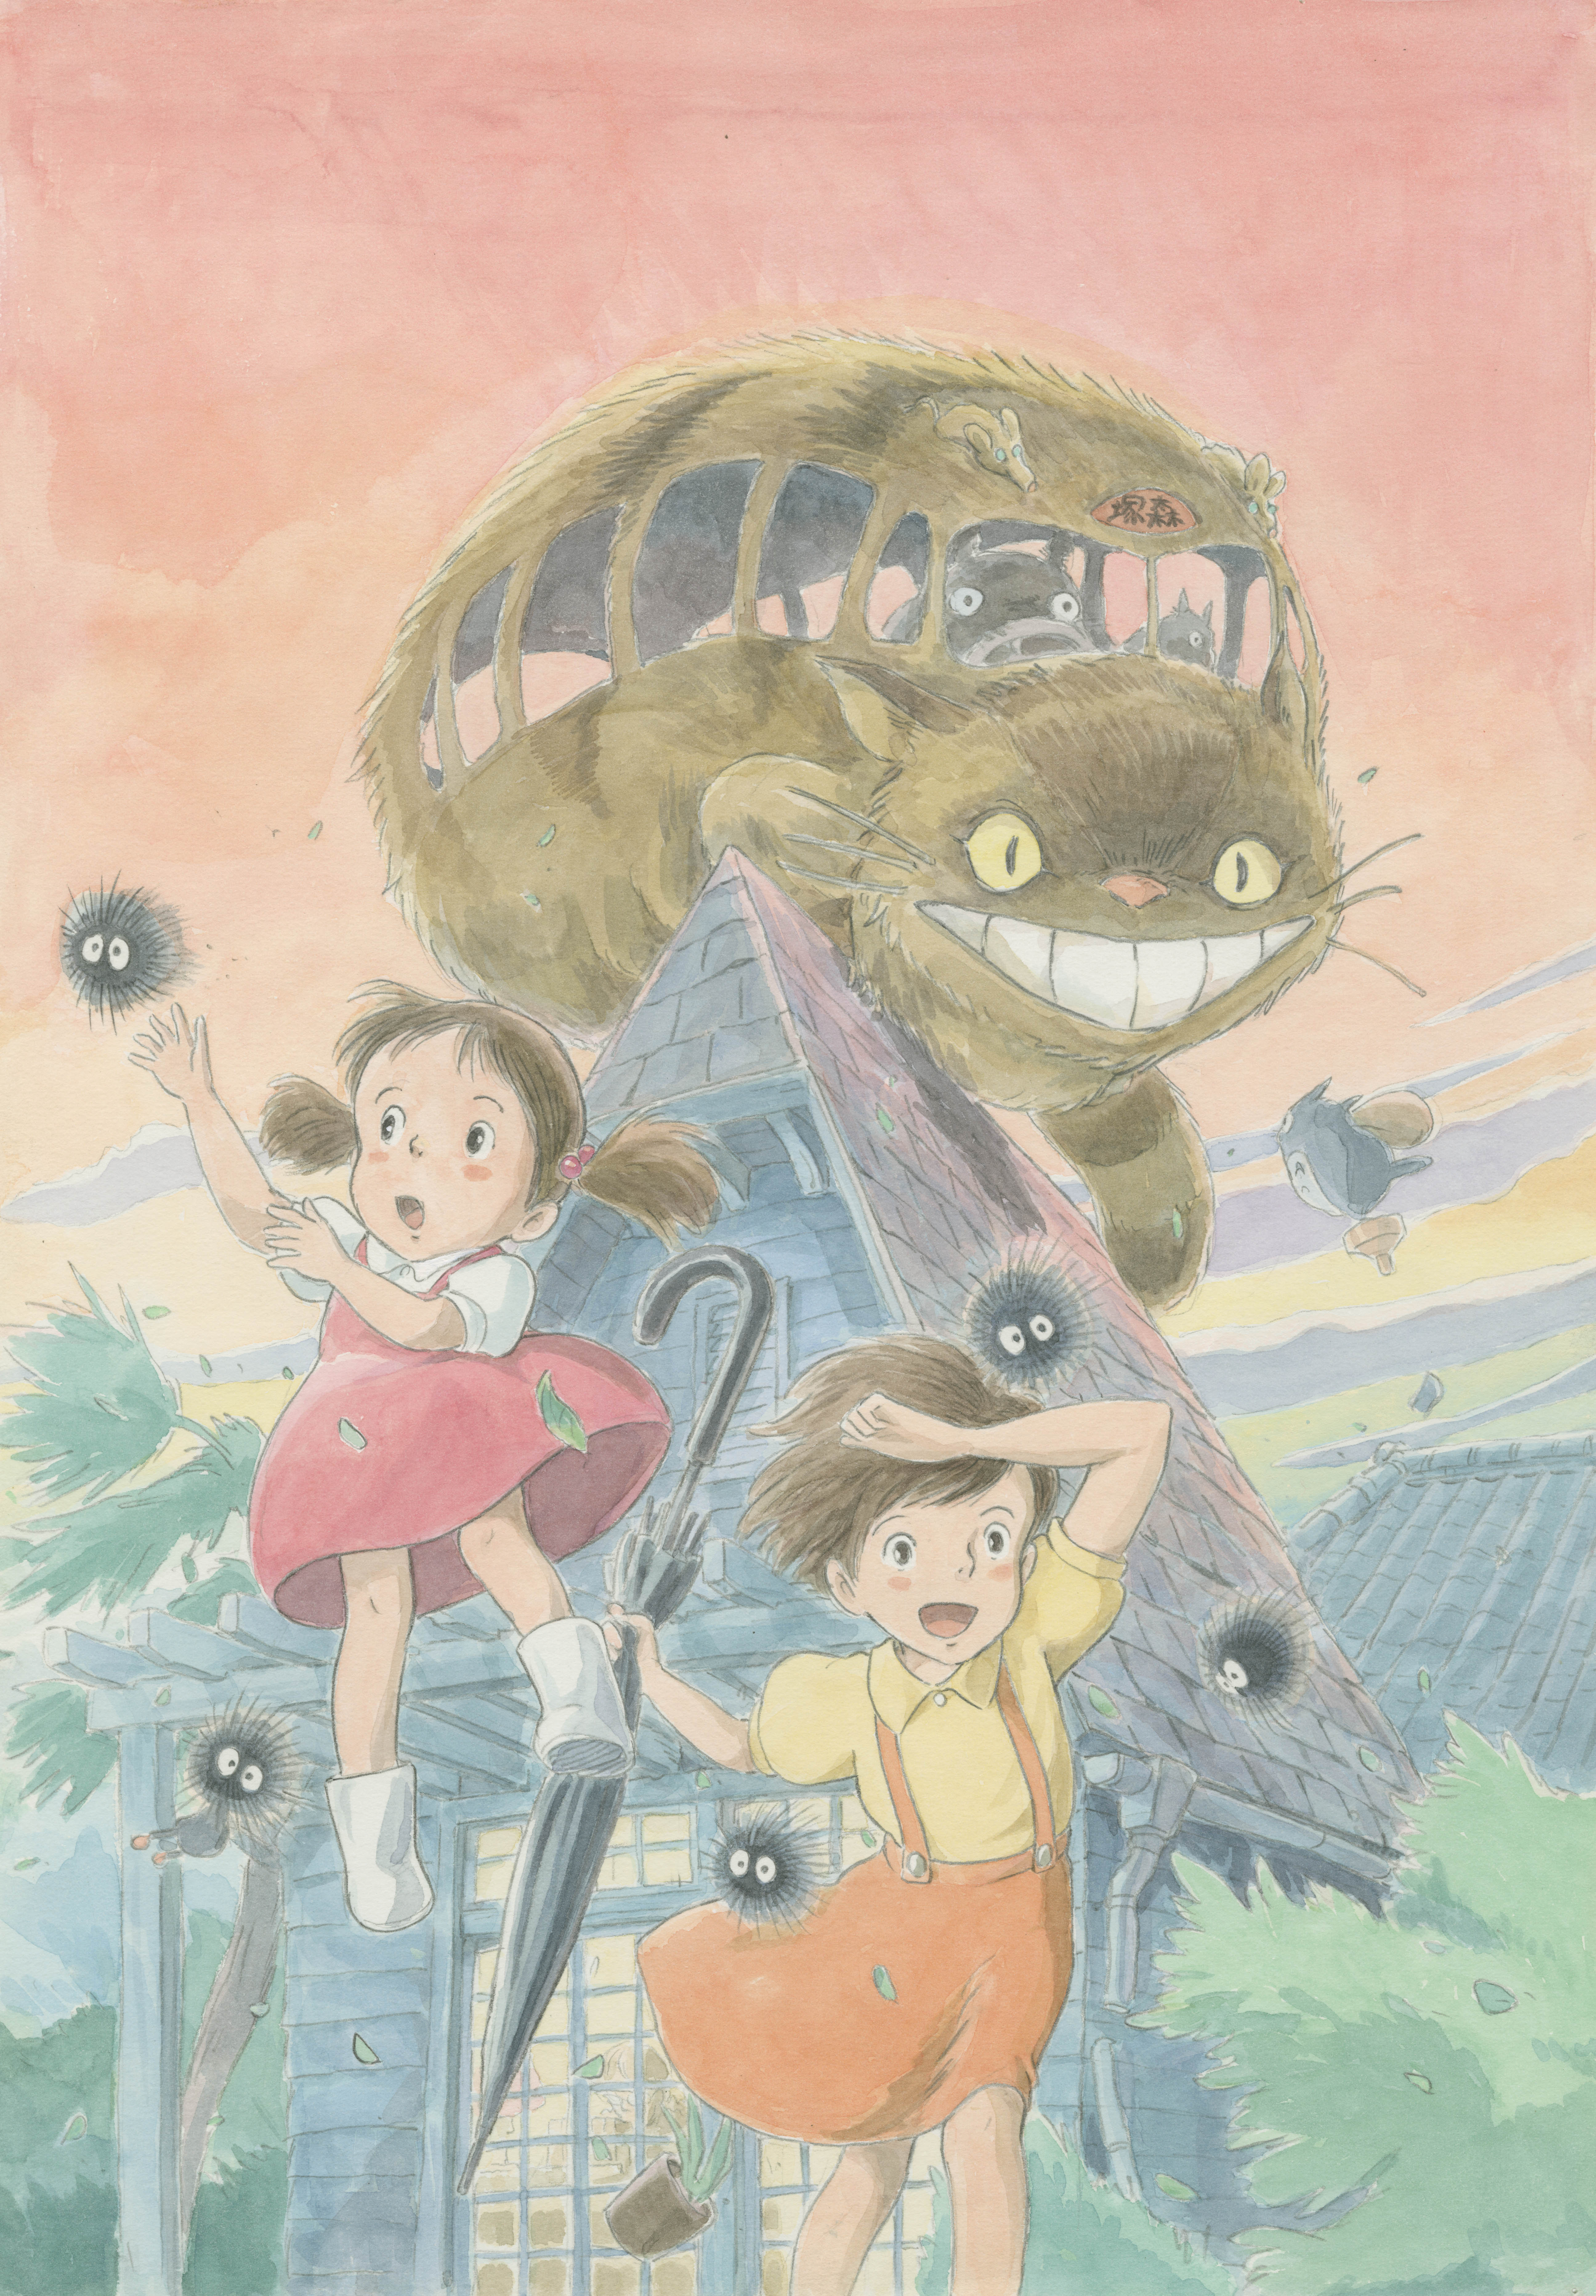 Ghibli Expo-Ghibli Park, One Year to Open-